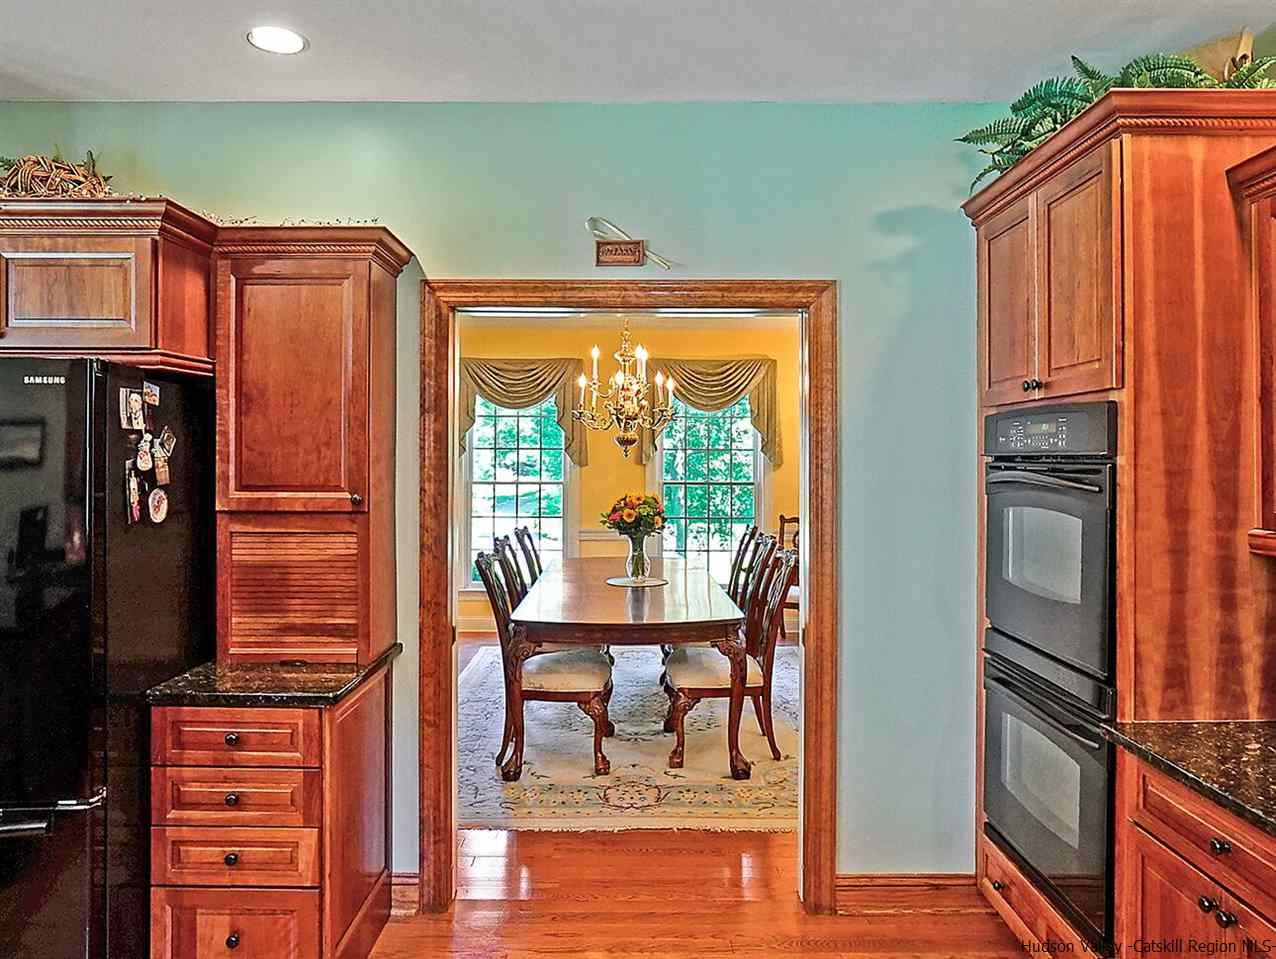 Additional photo for property listing at 59 Barraco Boulevard 59 Barraco Boulevard Rhinebeck, New York 12572 United States